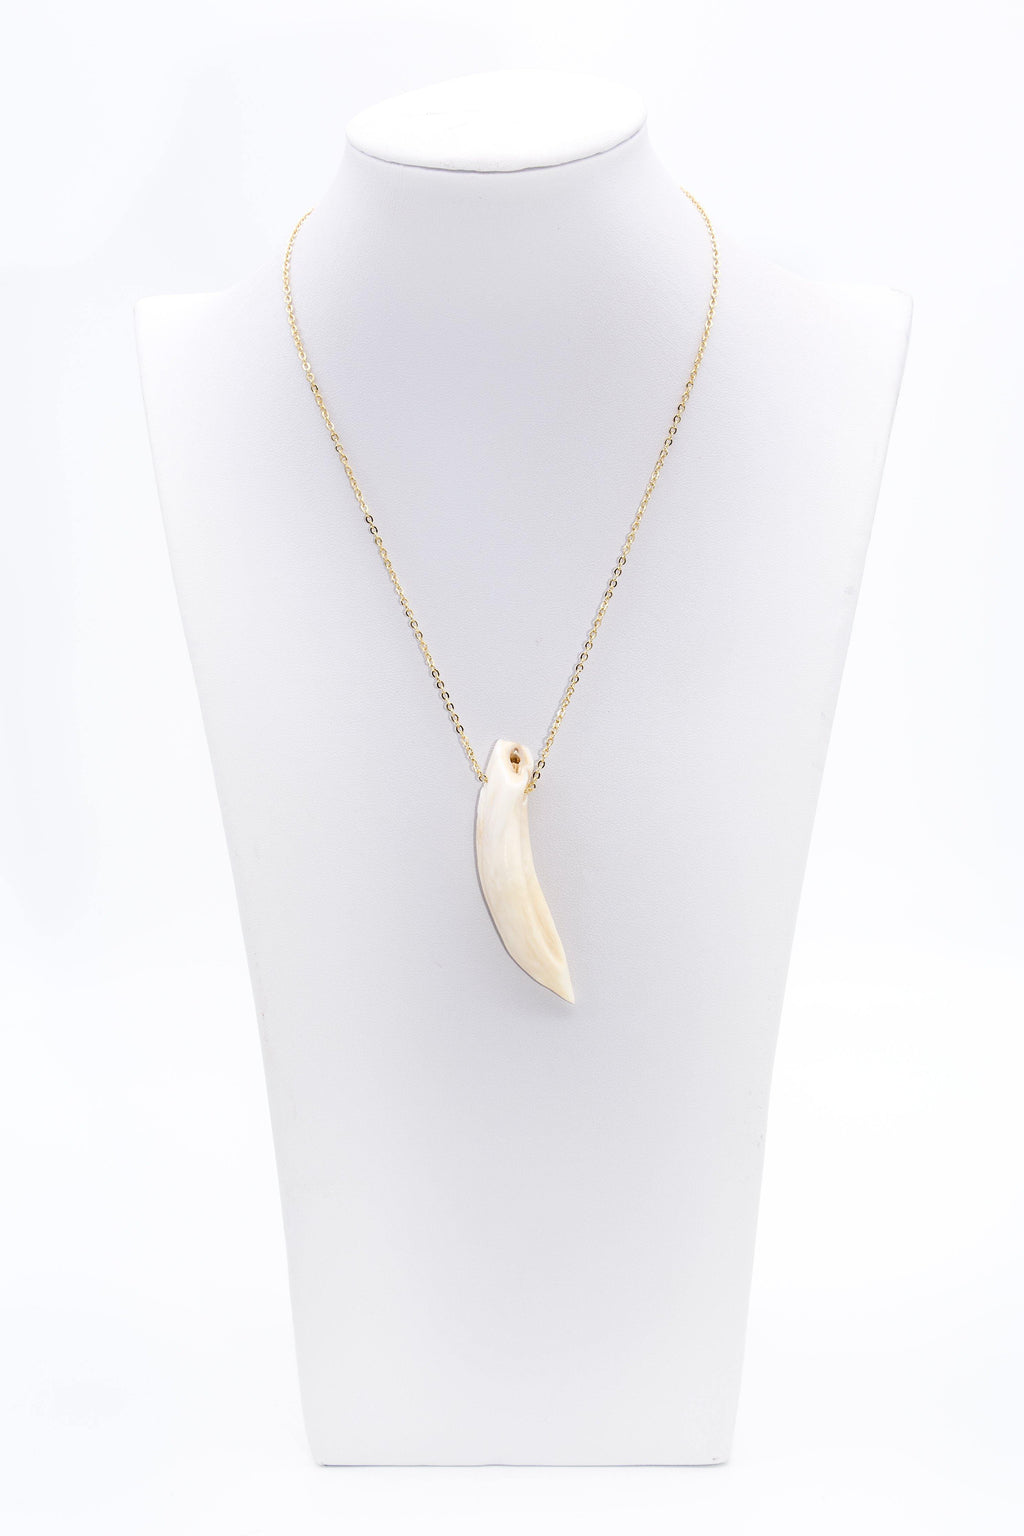 Deer Antler Pendanklacet Necklace 14K Gold Filled Chain - Filosophy